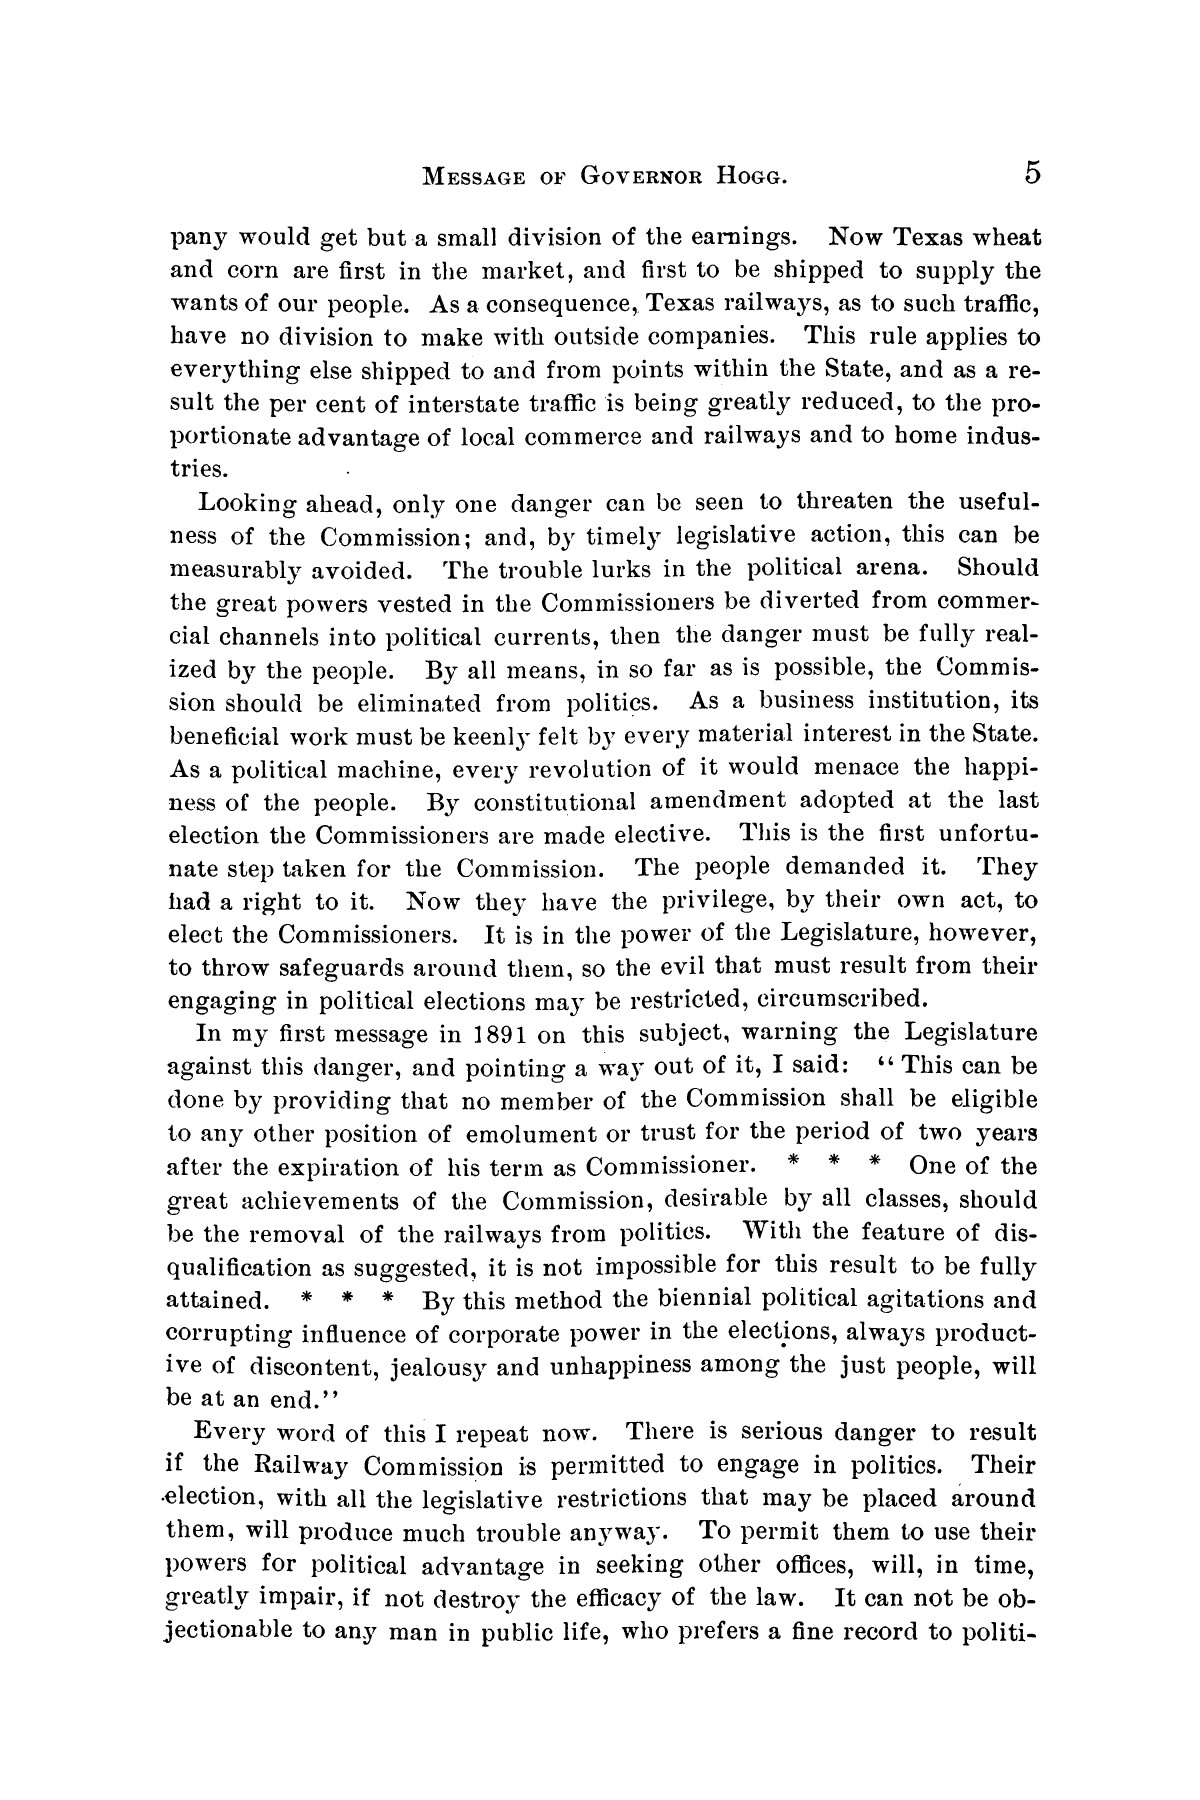 Message of Governor James S. Hogg to the twenty-fourth legislature of Texas                                                                                                      [Sequence #]: 5 of 48